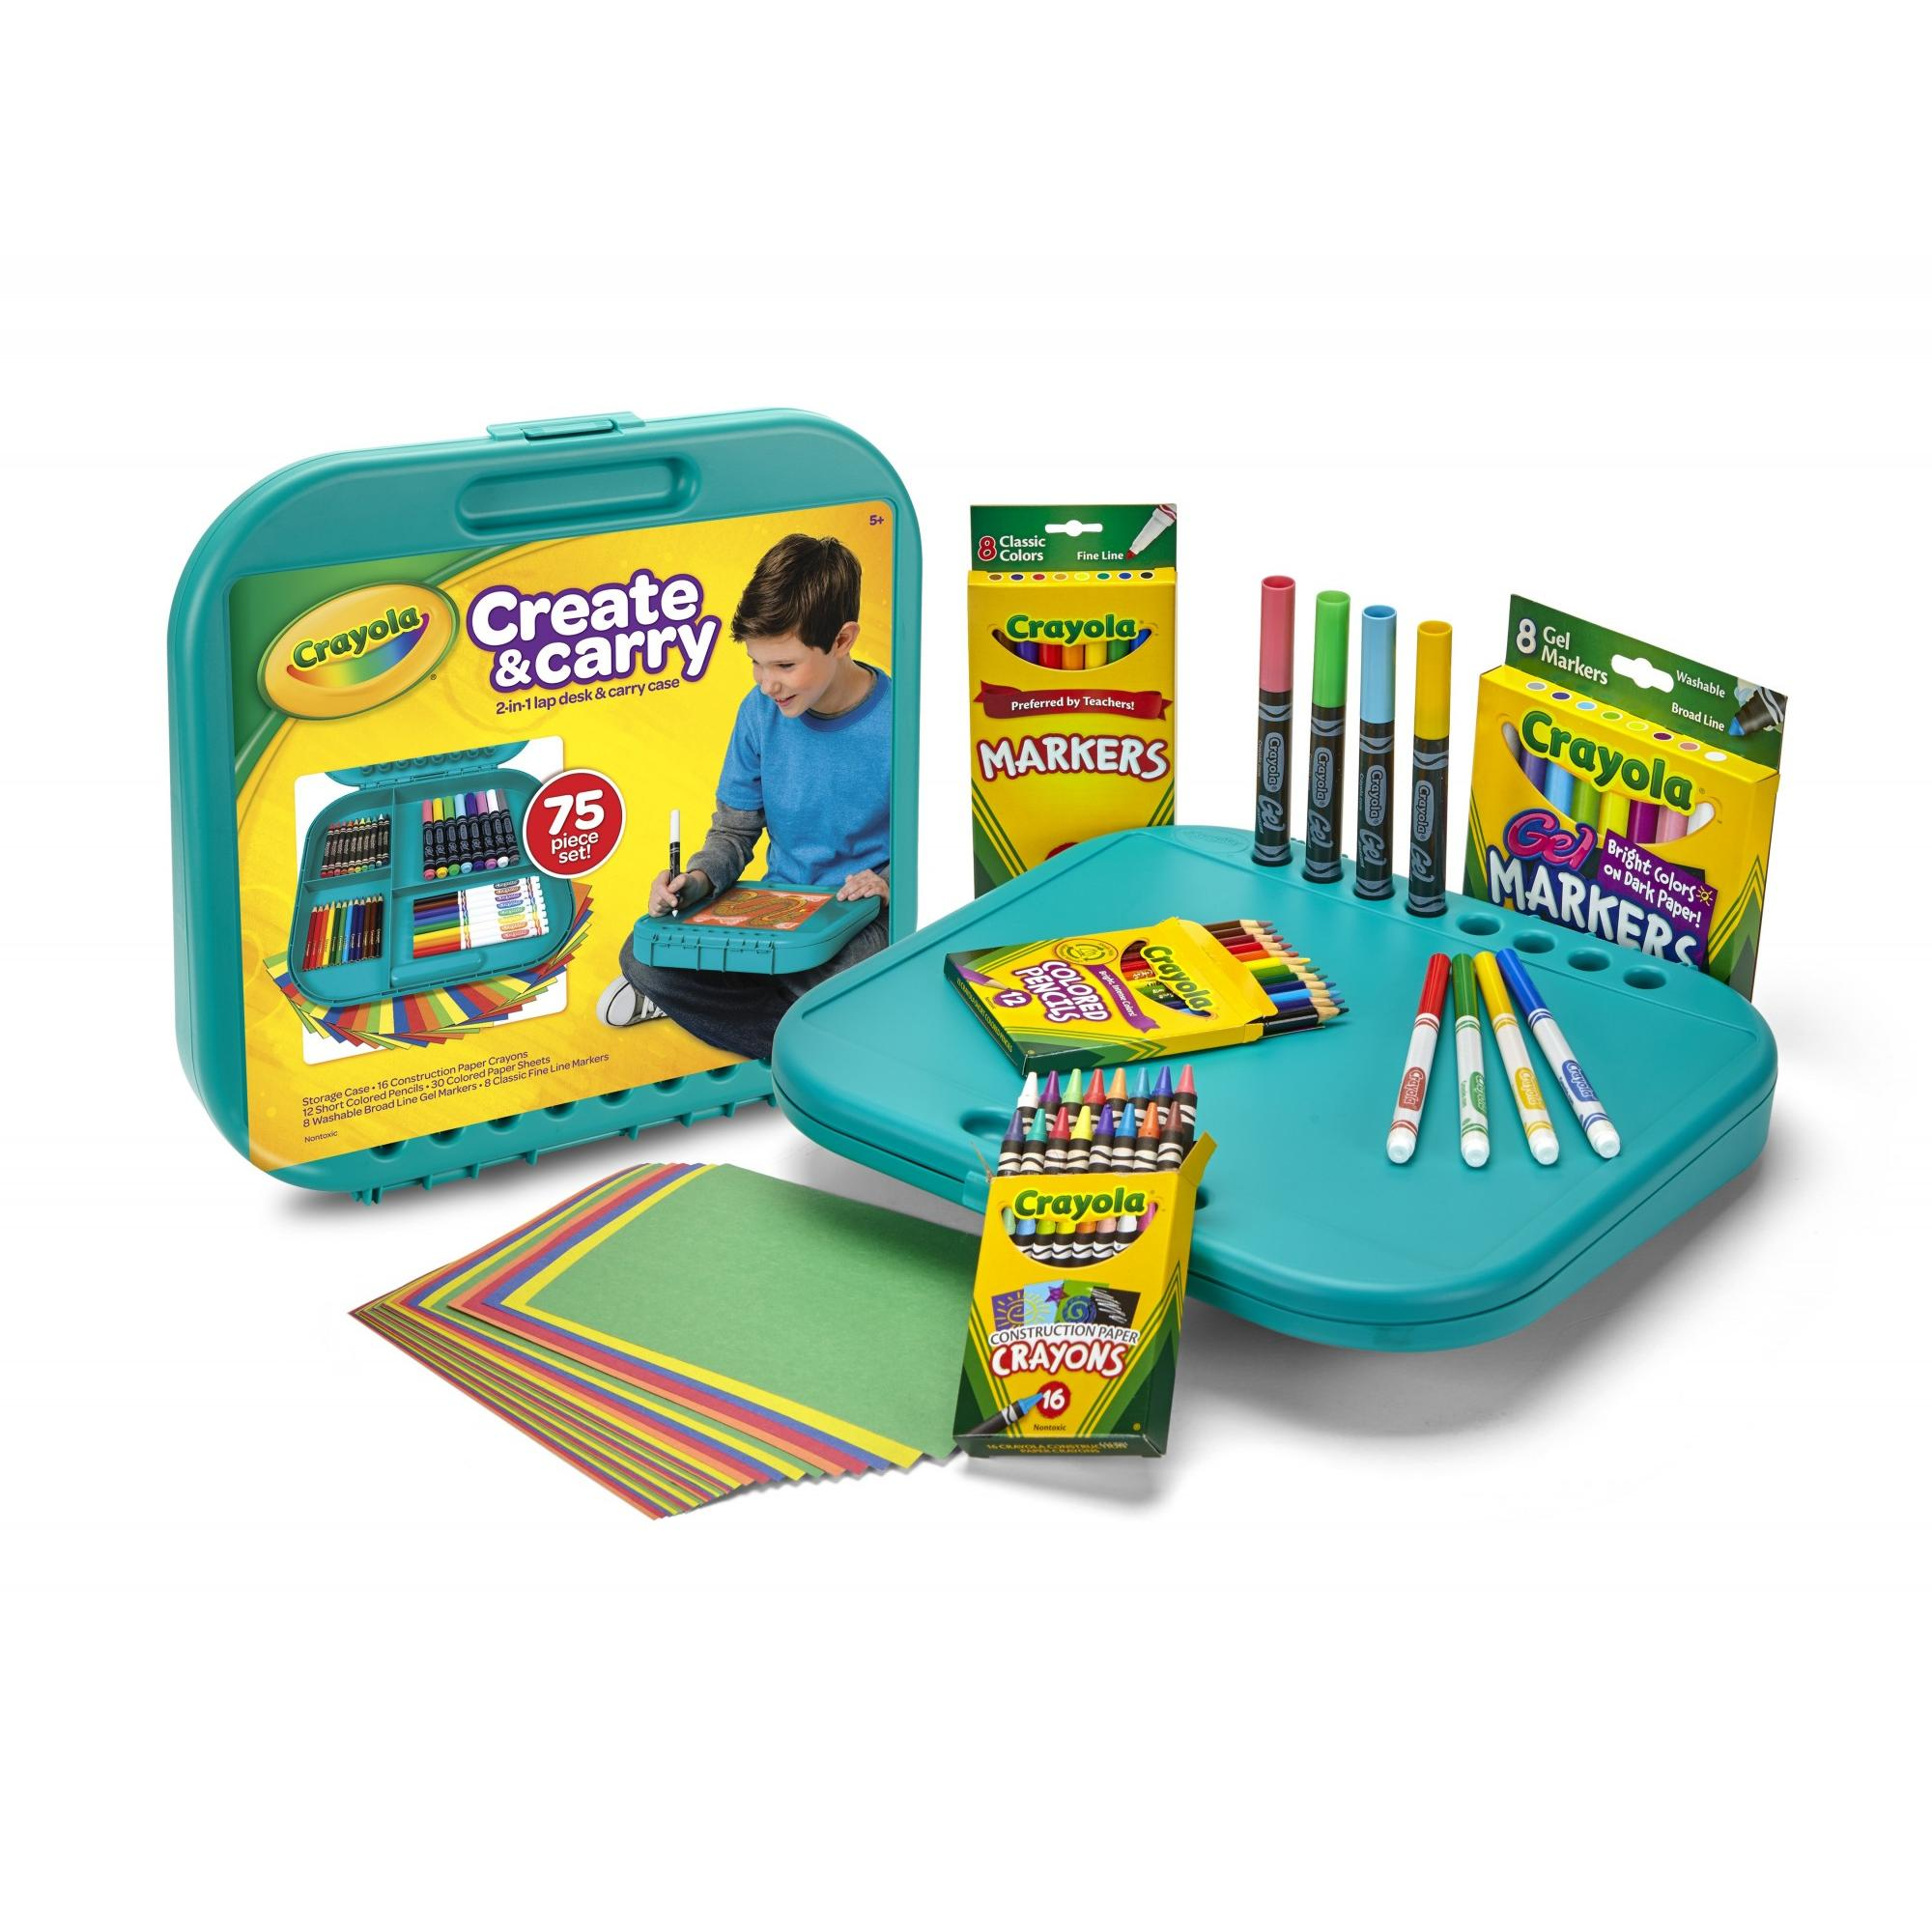 Crayola Create and Carry Case, Great Gift for Kids and Travel by Crayola